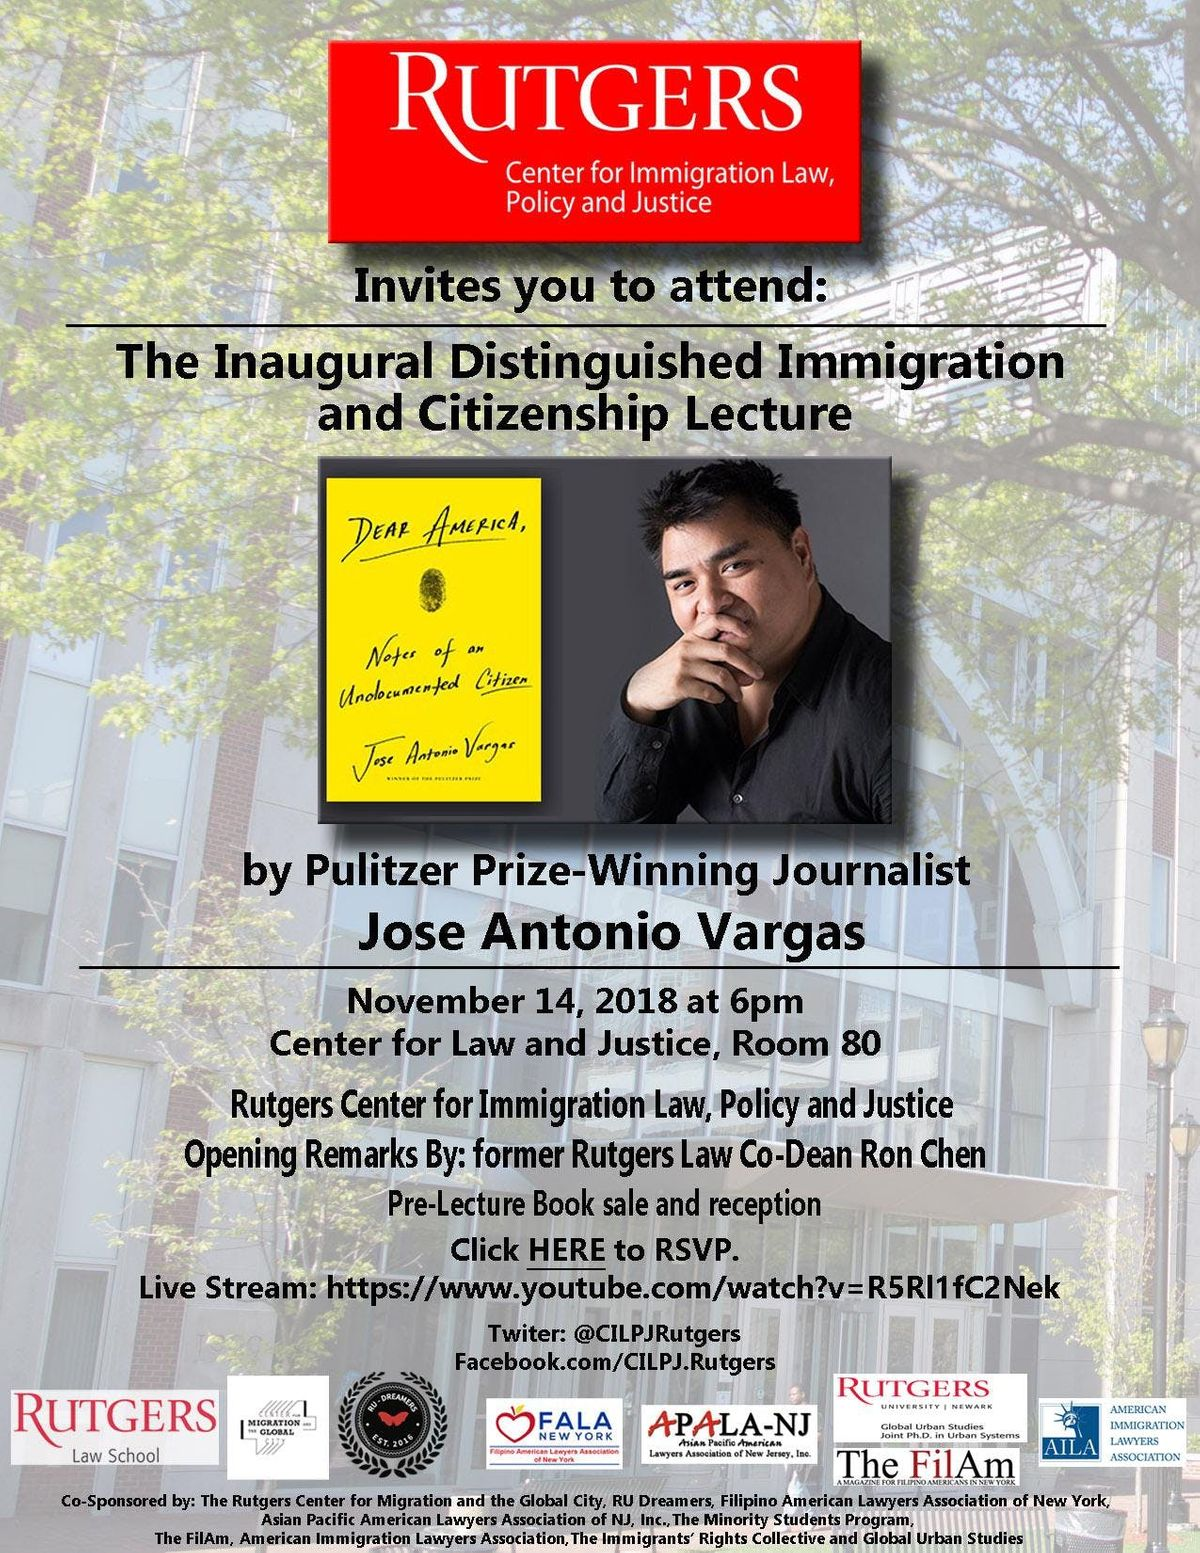 Distinguished Immigration and Citizenship Lecture by Jose Antonio Vargas